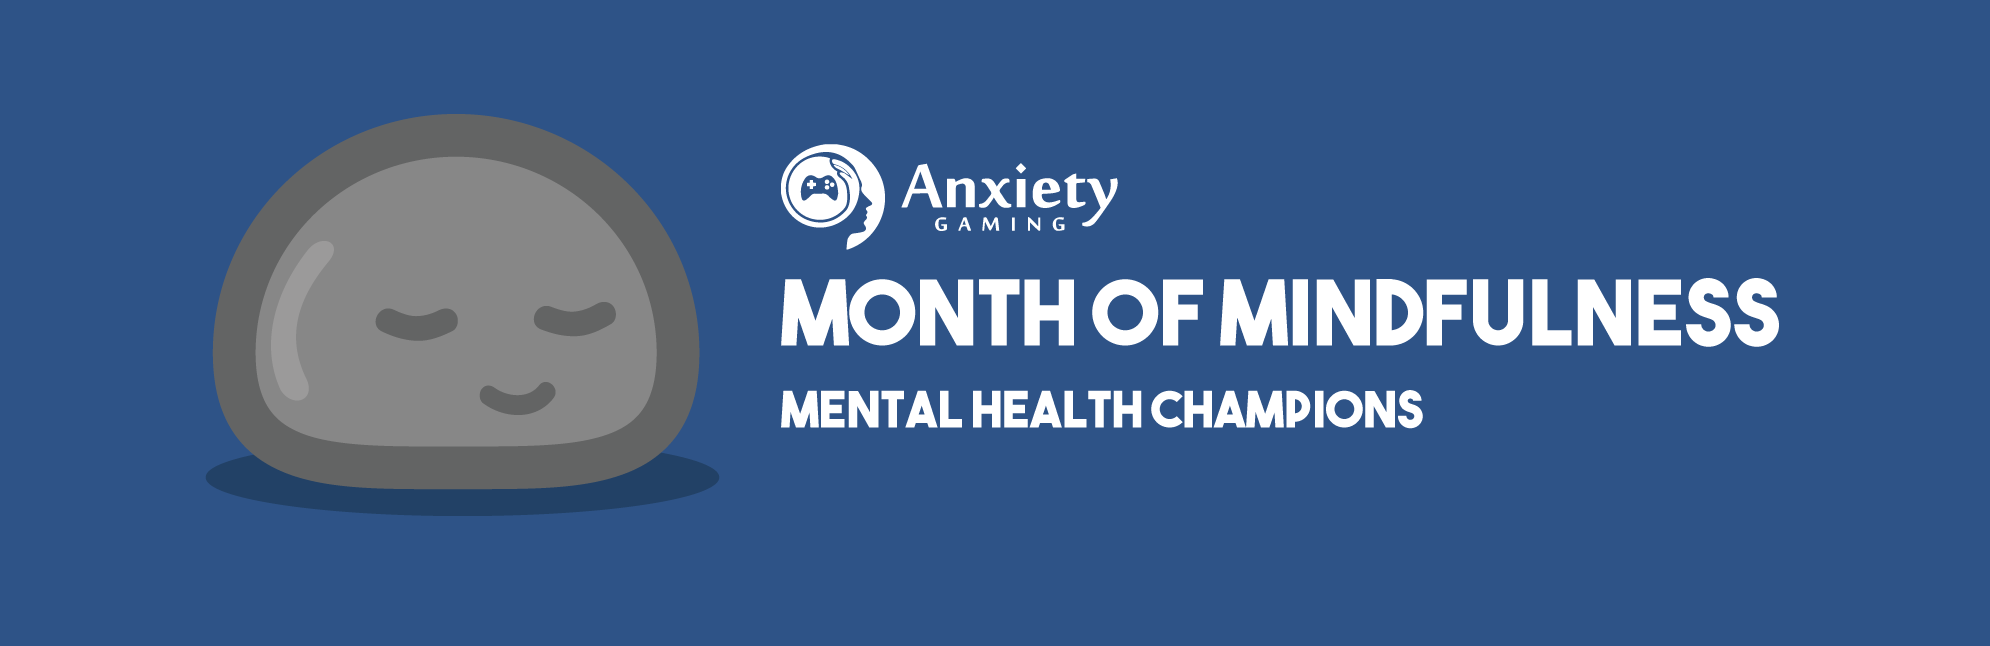 Month-of-Mindfulness-Banner.png